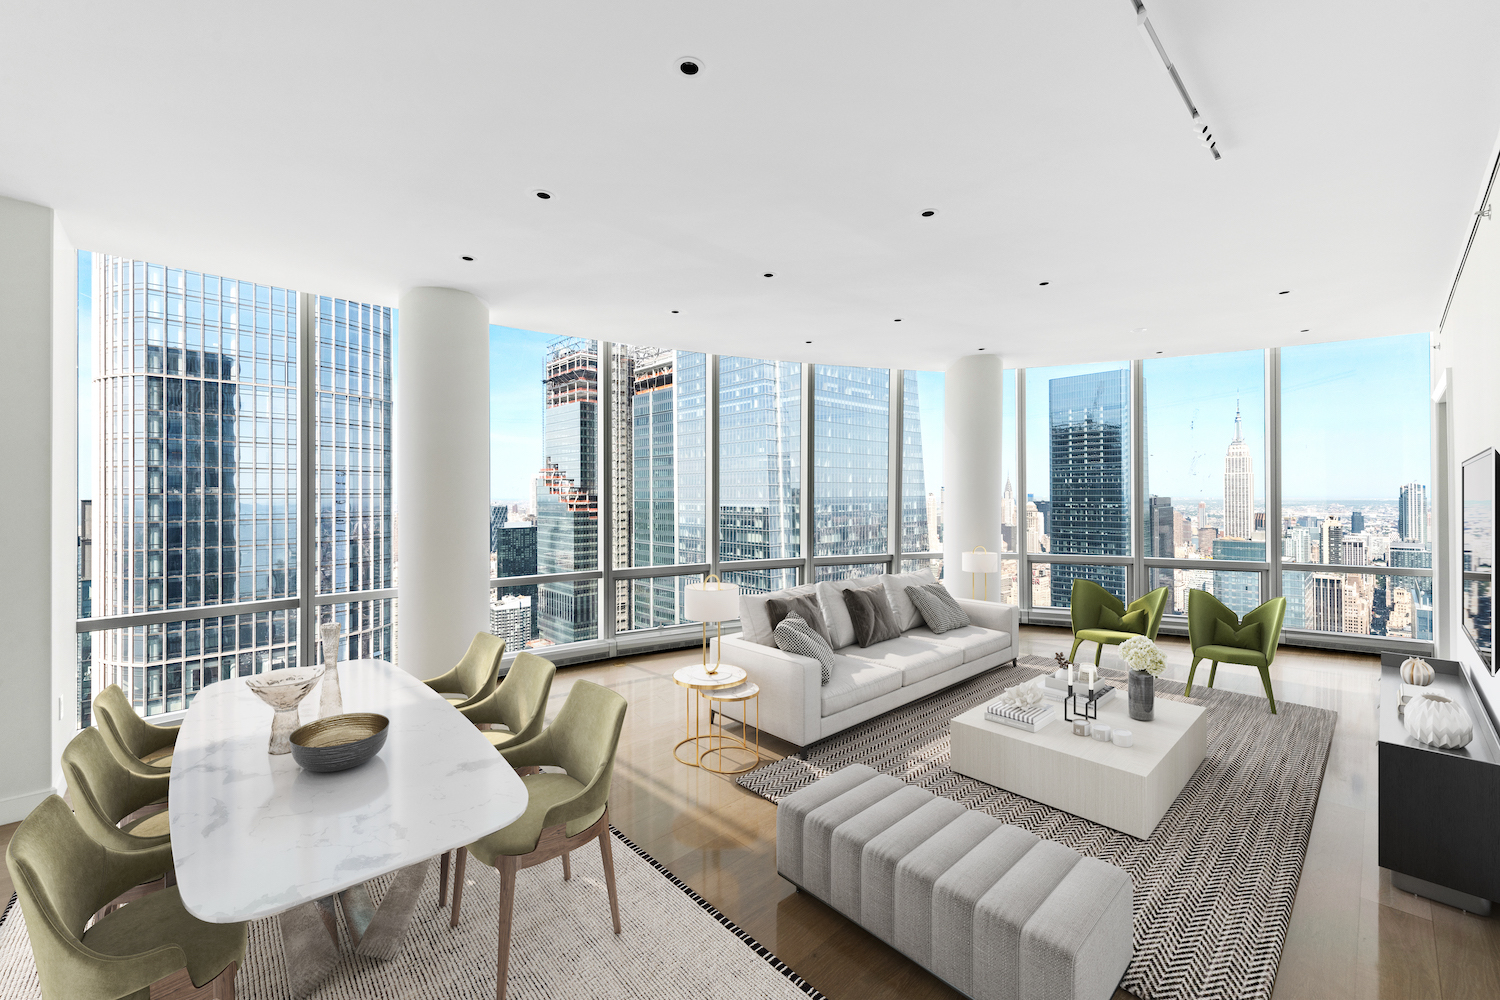 Welcome to this sublime skyline penthouse nestled in the ultra-luxurious Hudson Yards neighborhood, a stunning 3-bedroom, 3.5-bathroom home wrapped in floor-to-ceiling windows and saturated with natural light.  Highlights of this 2,538 sq. ft. apartment include beautiful hardwood floors, northern and western exposure, a side-by-side washer/dryer, soaring ceilings over 10 ft. in height, and expansive views of the Manhattan skyline including the Empire State Building and the Chrysler Building.  A grand foyer adorned with a powder room and coat closets leads into an wraparound living room, dining room, and kitchen overlooking the river. The kitchen is equipped with an eat-in waterfall peninsula, a windowed breakfast nook, sleek marble countertops and backsplashes, custom cabinets, and a suite of fully-integrated appliances from Miele.     The primary bedroom has couples' walk-in closets and a spa-like en-suite bathroom with double sinks, a walk-in rain shower, and a deep soaking tub. The second and third bedrooms each have large reach-in closets and full en-suite bathrooms with chic tiles and custom vanities.   Fifteen Hudson Yards is a brand new residential building located in the exclusive Hudson Yards neighborhood. Residents have access to more than 40,000 sq. ft. of amenities that include a 75-ft long swimming pool, a state-of-the-art fitness center by The Wright Fit, a private yoga studio, spa suites, a beauty bar, private dining suites, a lounge, a screening room, a business center, a golf club, and an atelier. There is a 24-hour attended lobby and concierge service. The building has easy access to The High Line and The Shed and is surrounded by a number of luxury shopping, dining, and entertainment options. Pets are welcome.